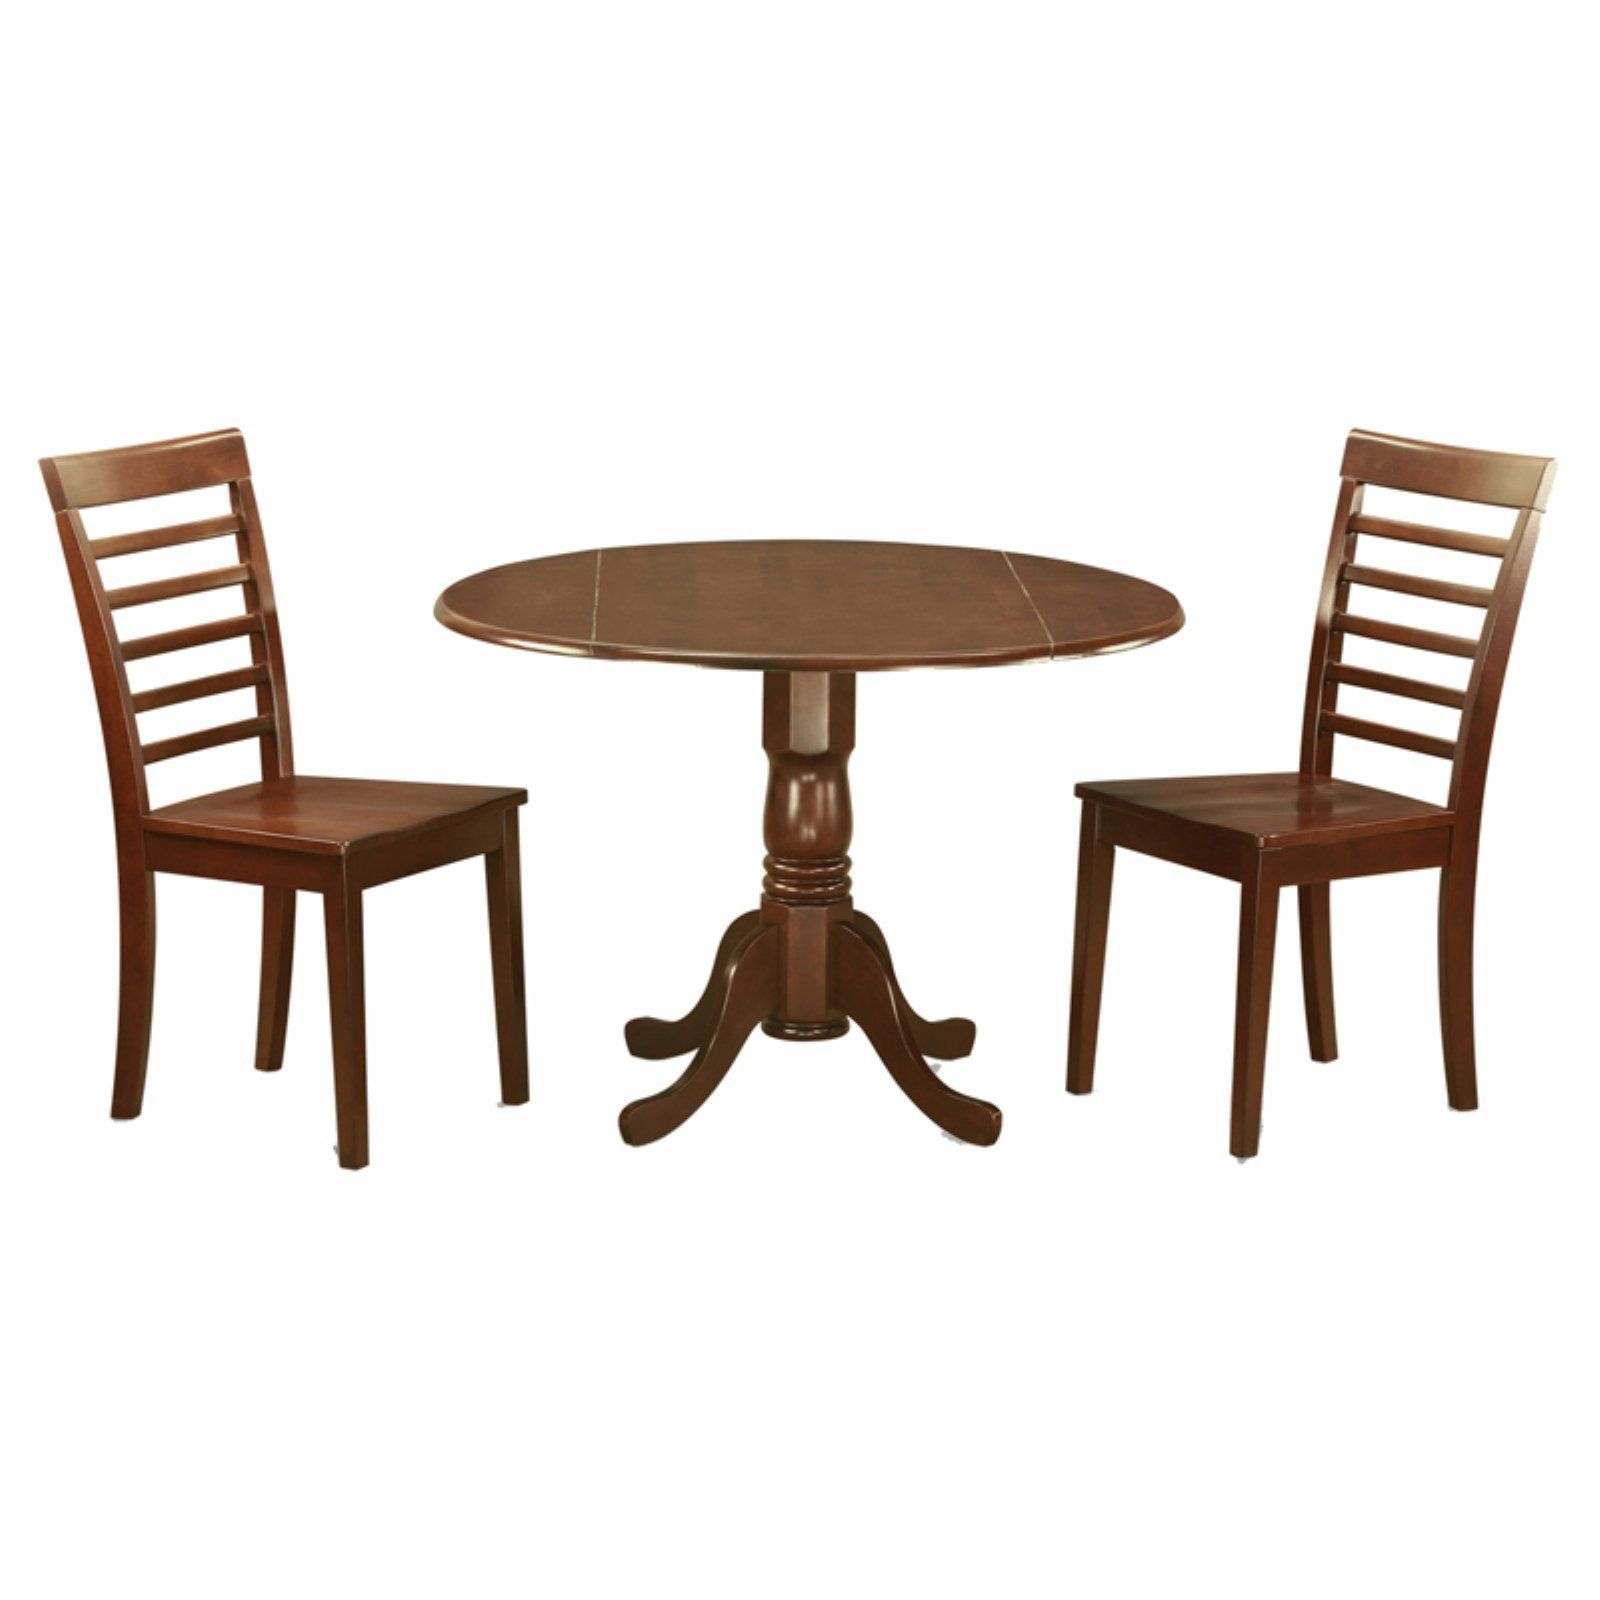 East west furniture dublin 3 piece drop leaf round dining table set with milan wooden seat